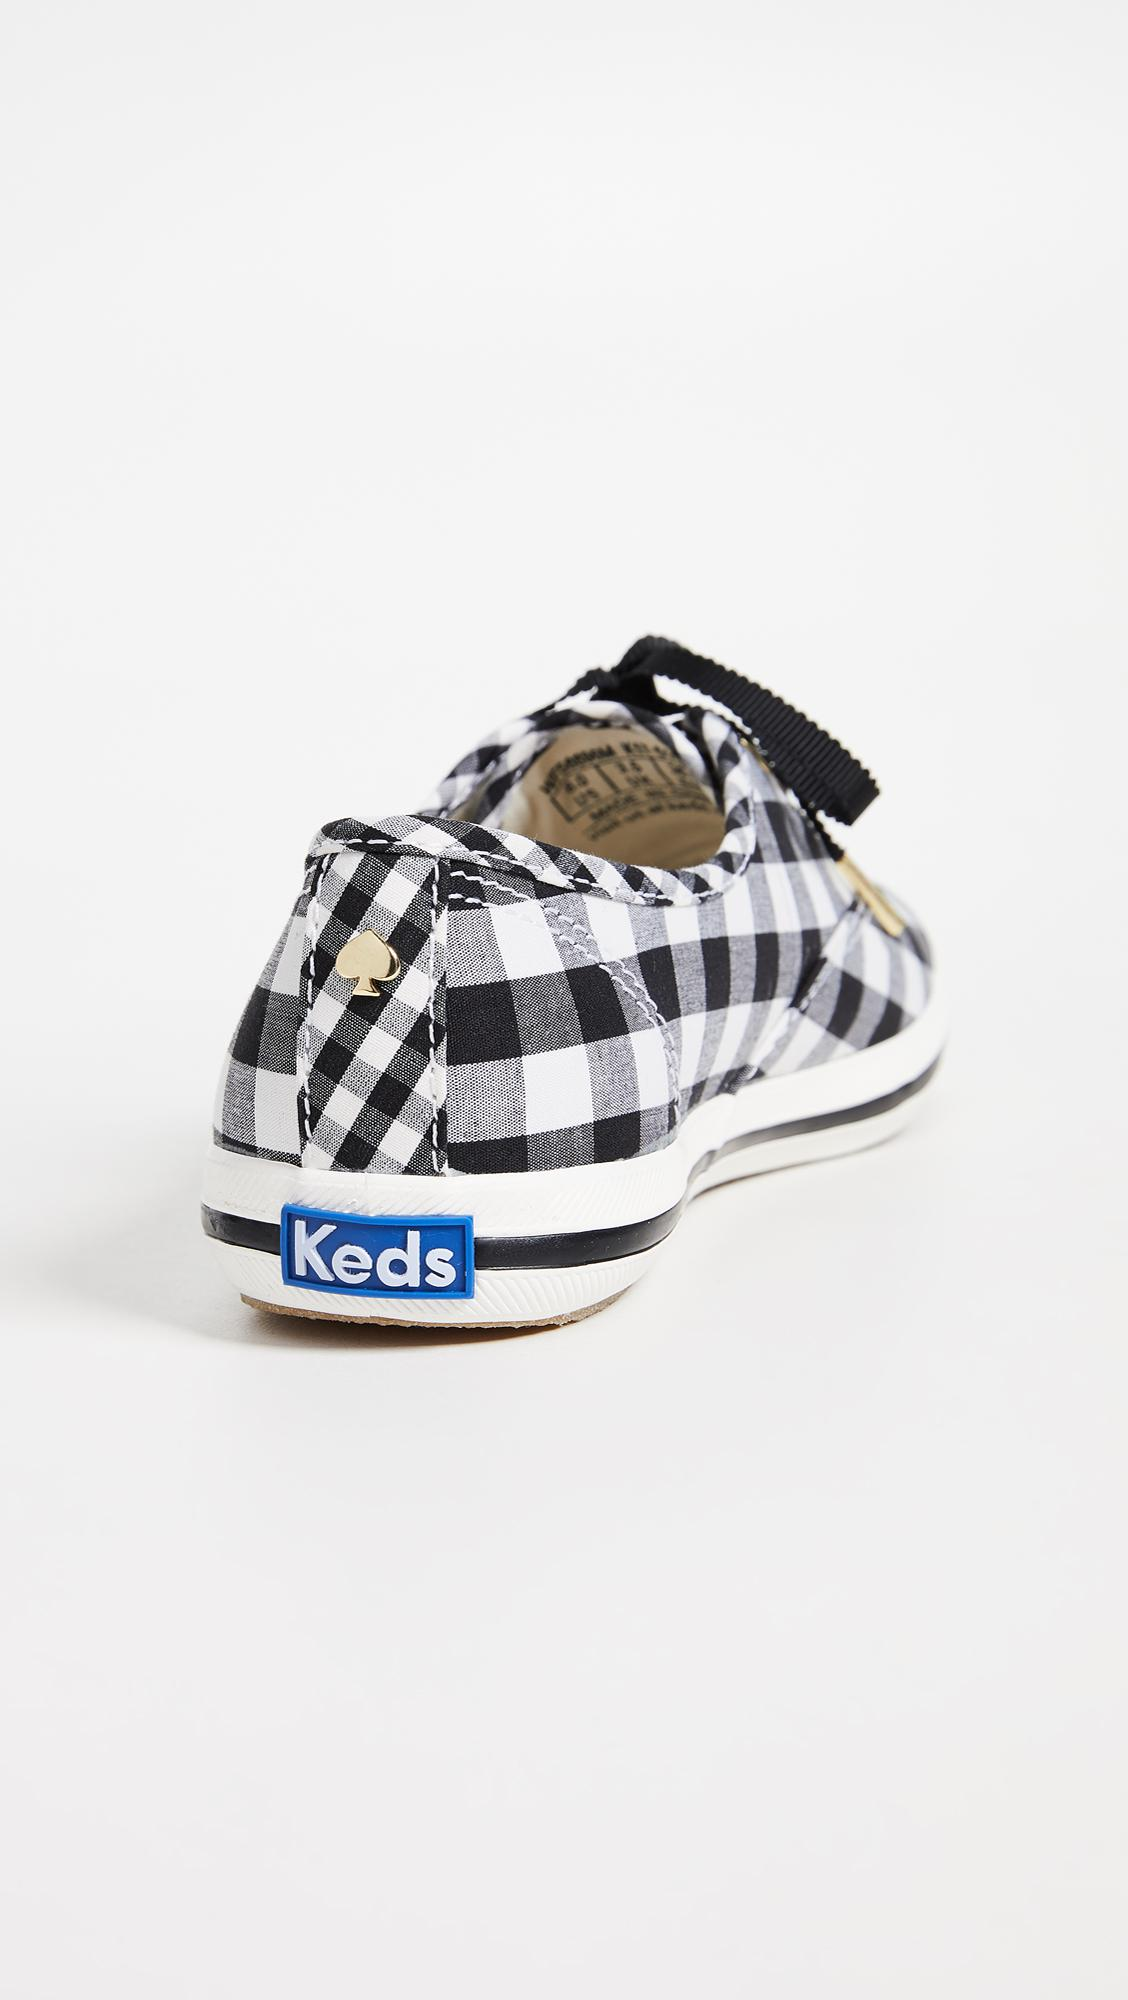 13a19260fea Lyst - Keds X Kate Spade New York Gingham Sneakers in Black